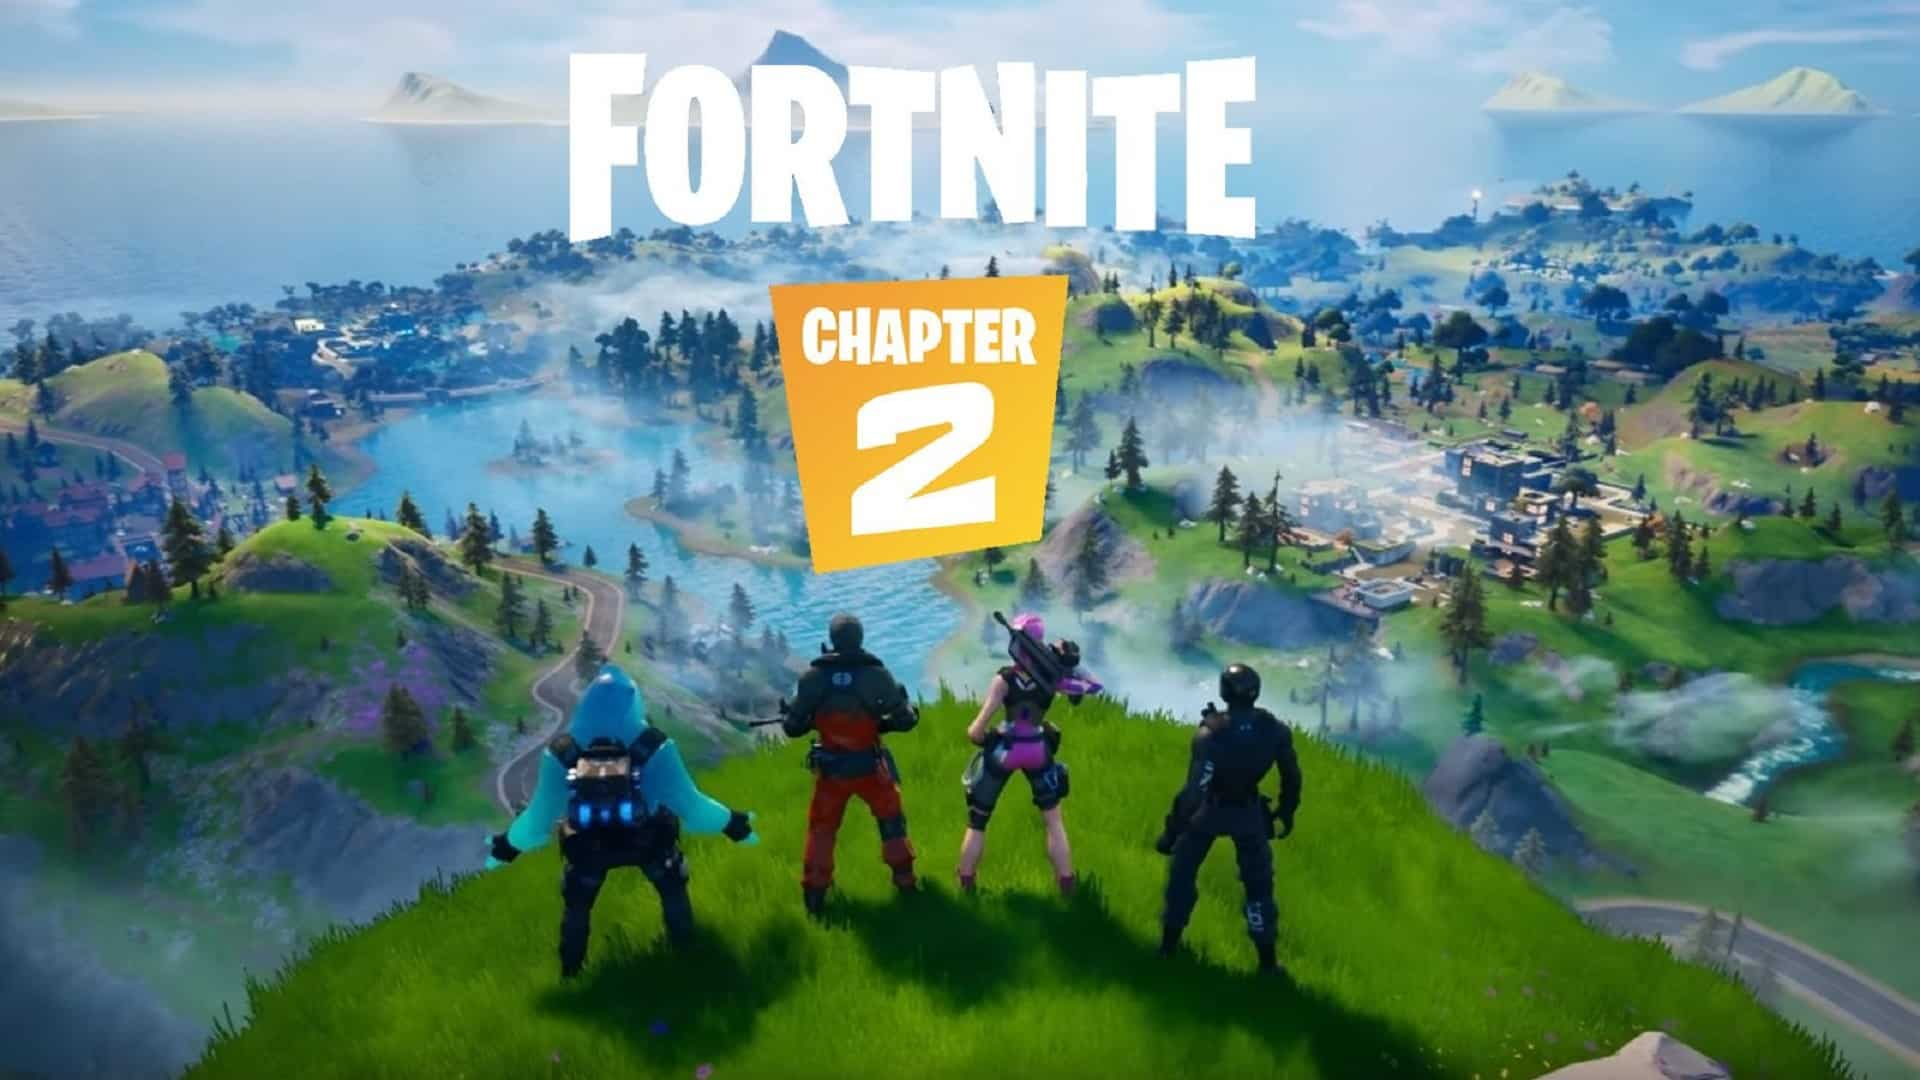 Epic Games Sues Fortnite Beta Tester After He Leaked Chapter 2 Details